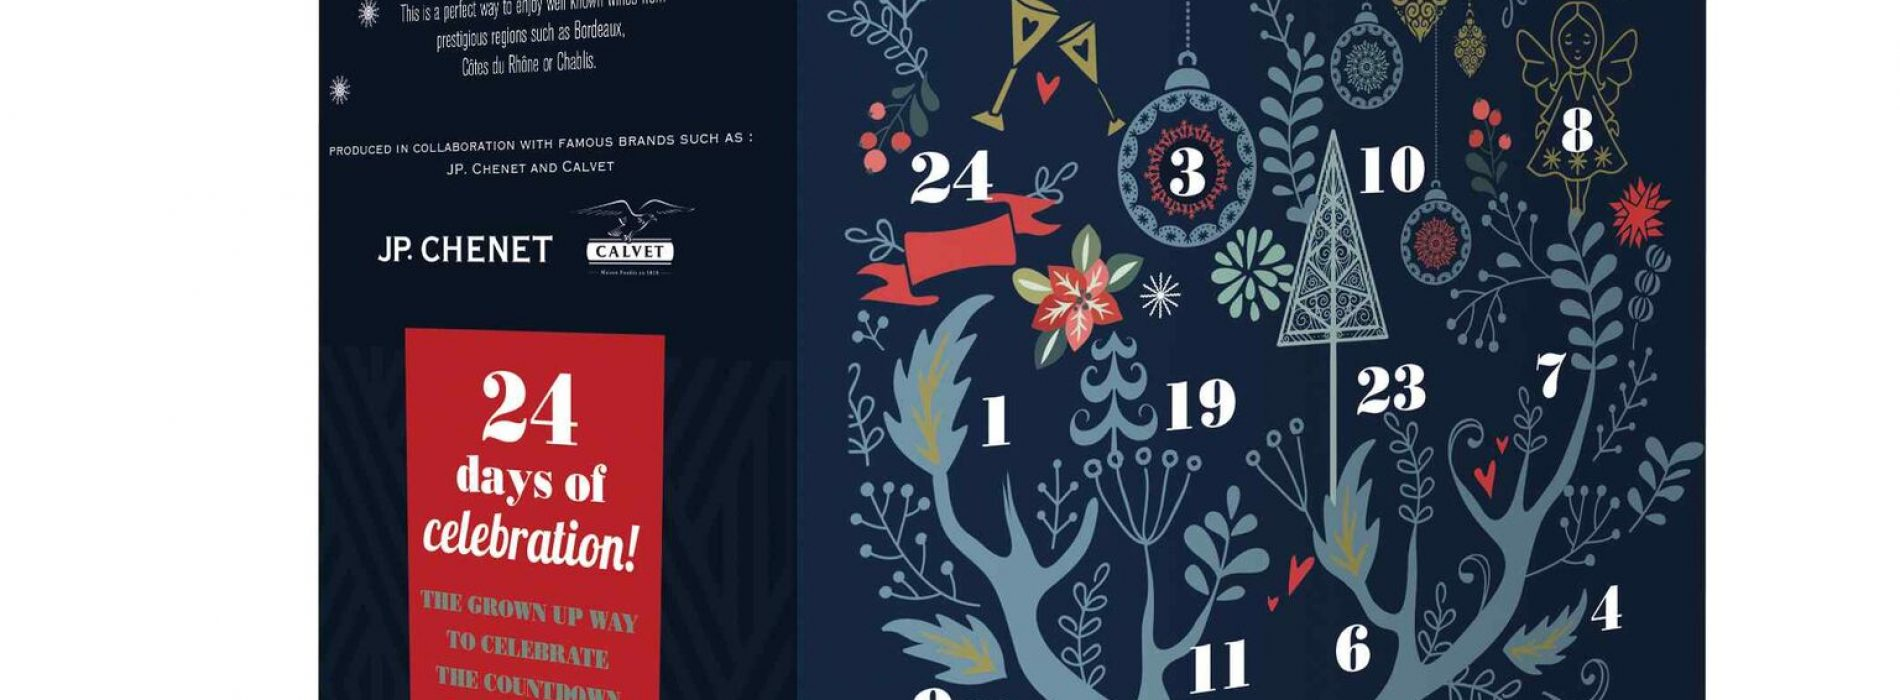 Advent Calendar Ideas That Will Impress the Santa Pants Right Off You